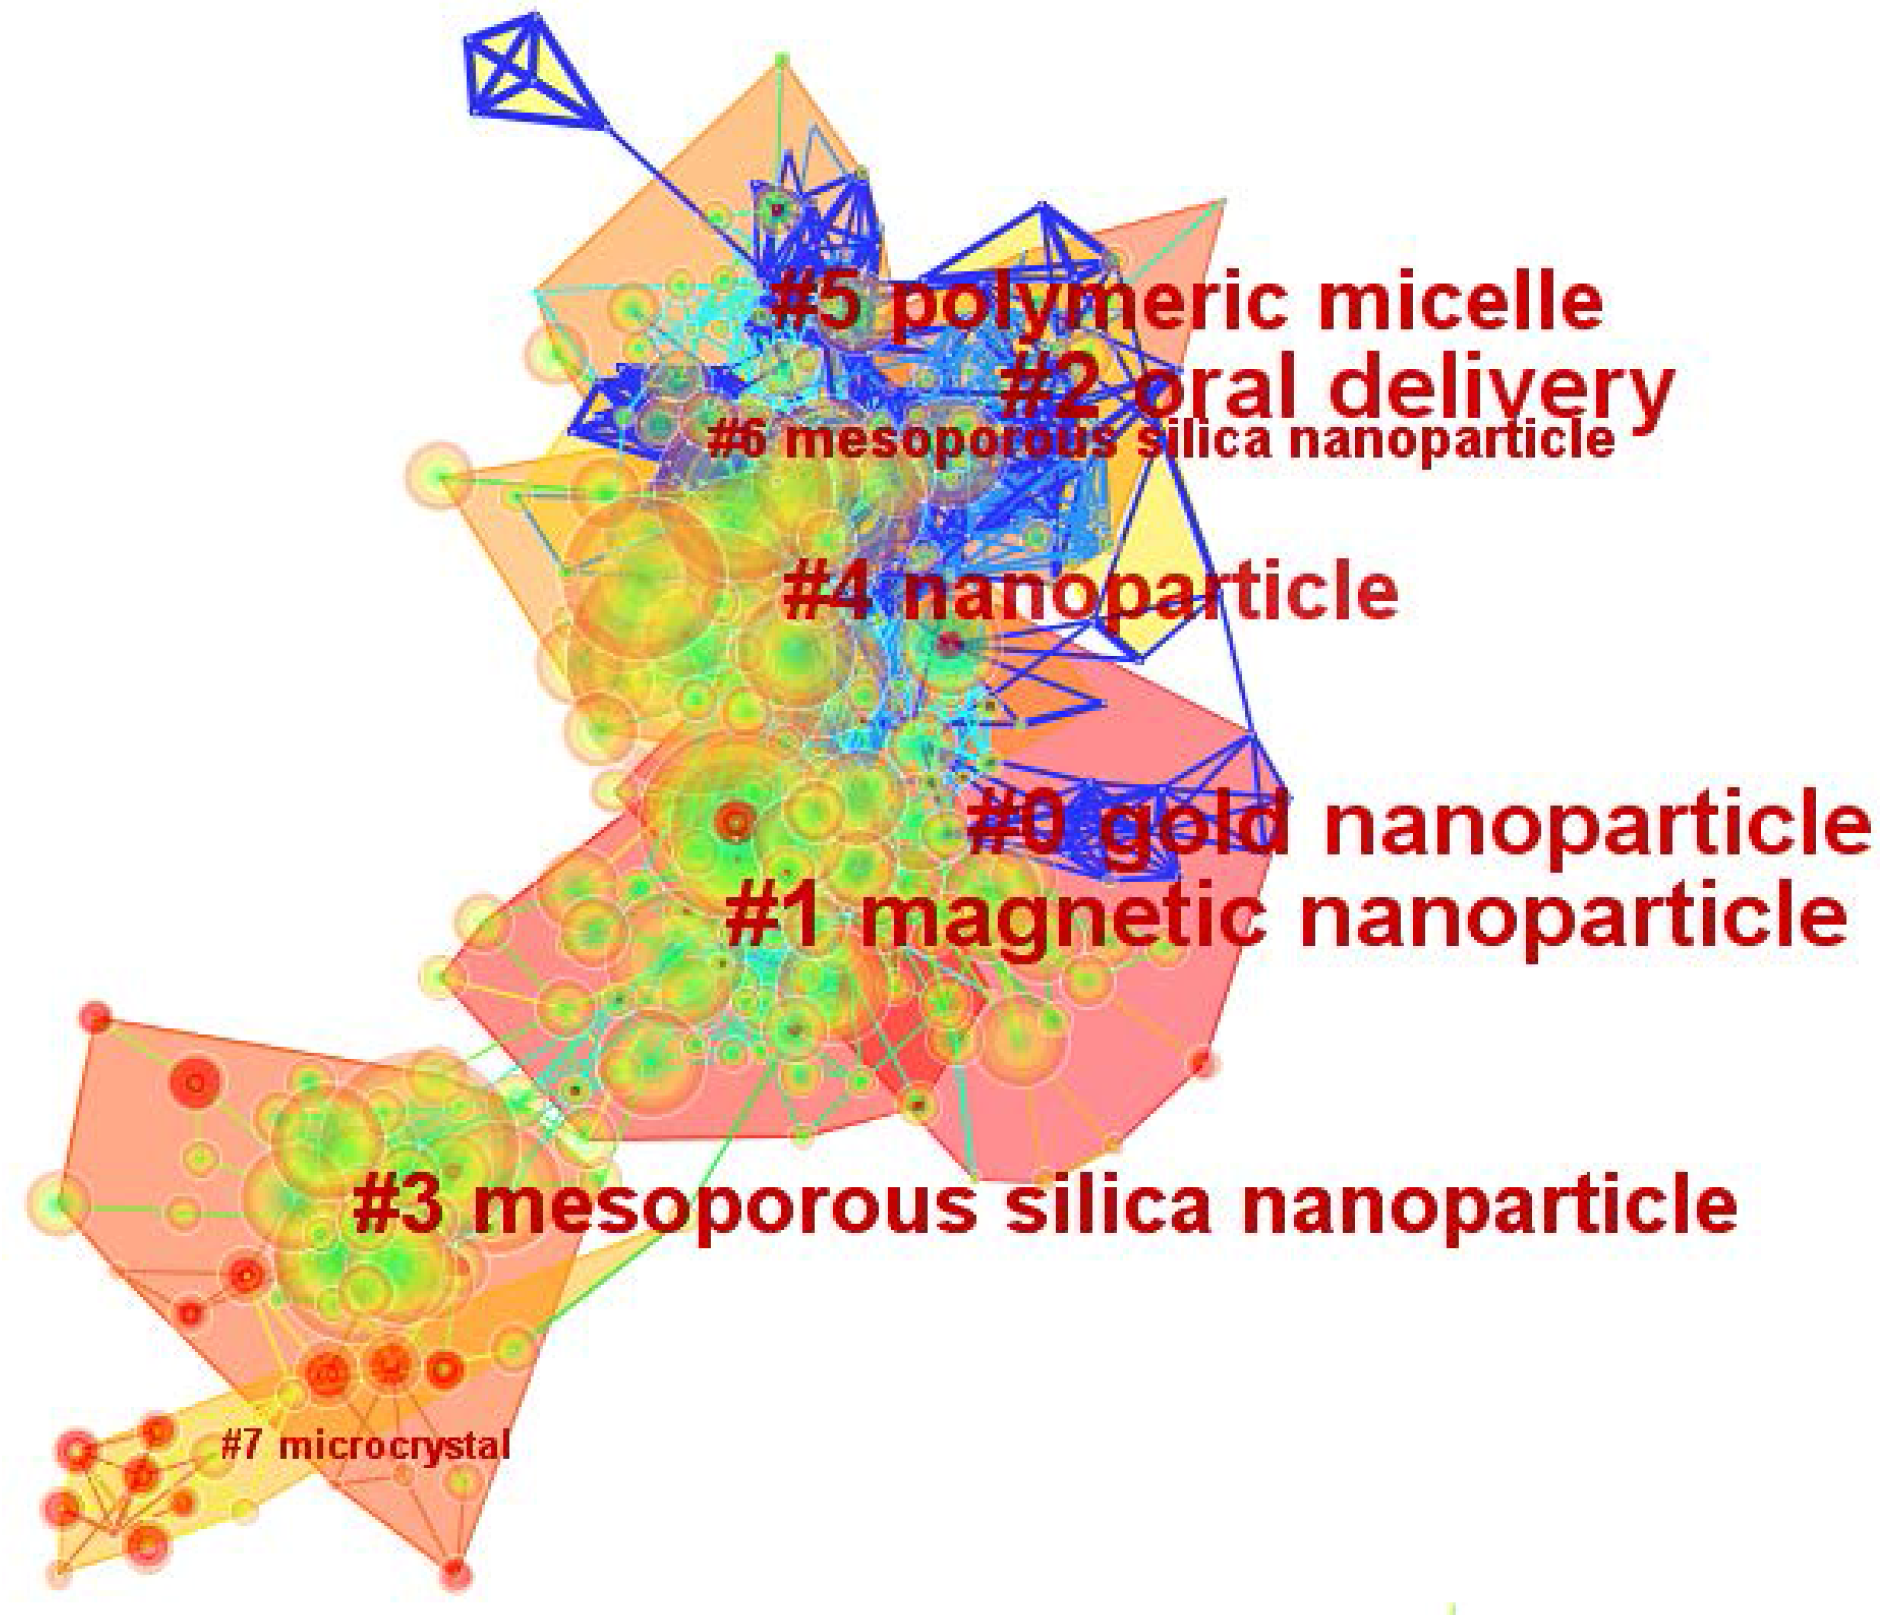 nanoparticle review article pdf